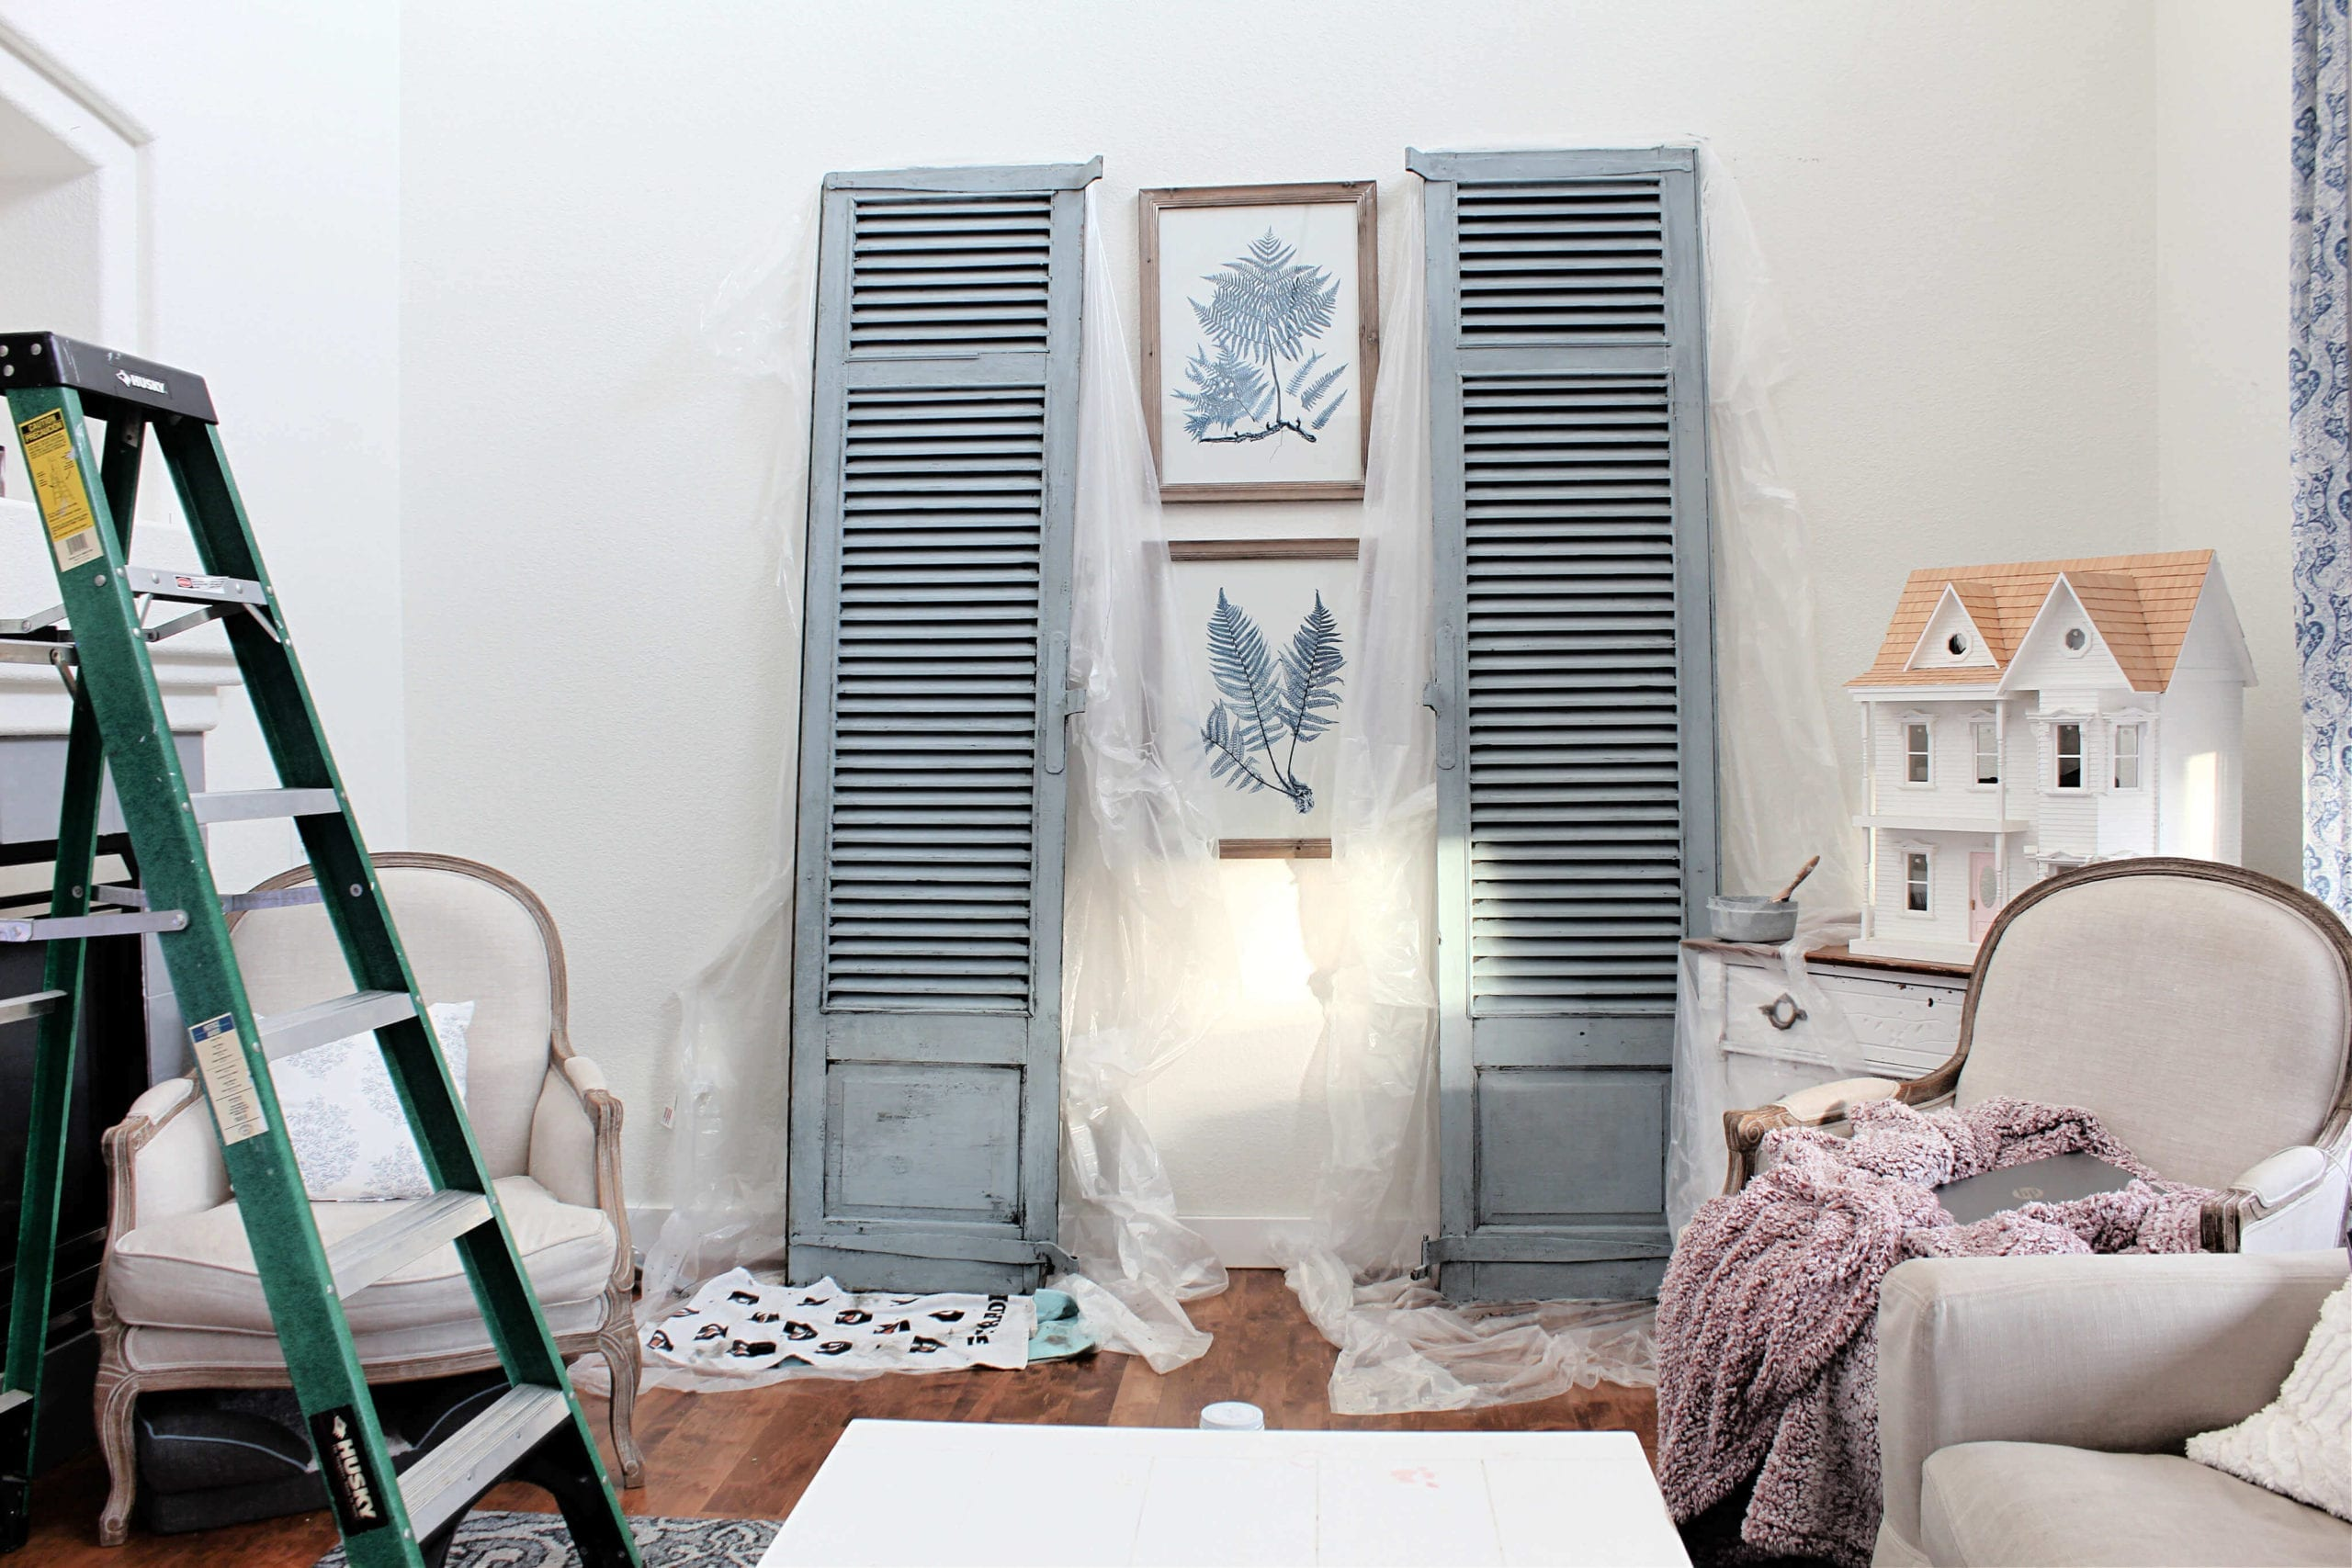 A quick paint project: Shutters Painted In Bergere By Miss Mustard Seed's Milk Paint